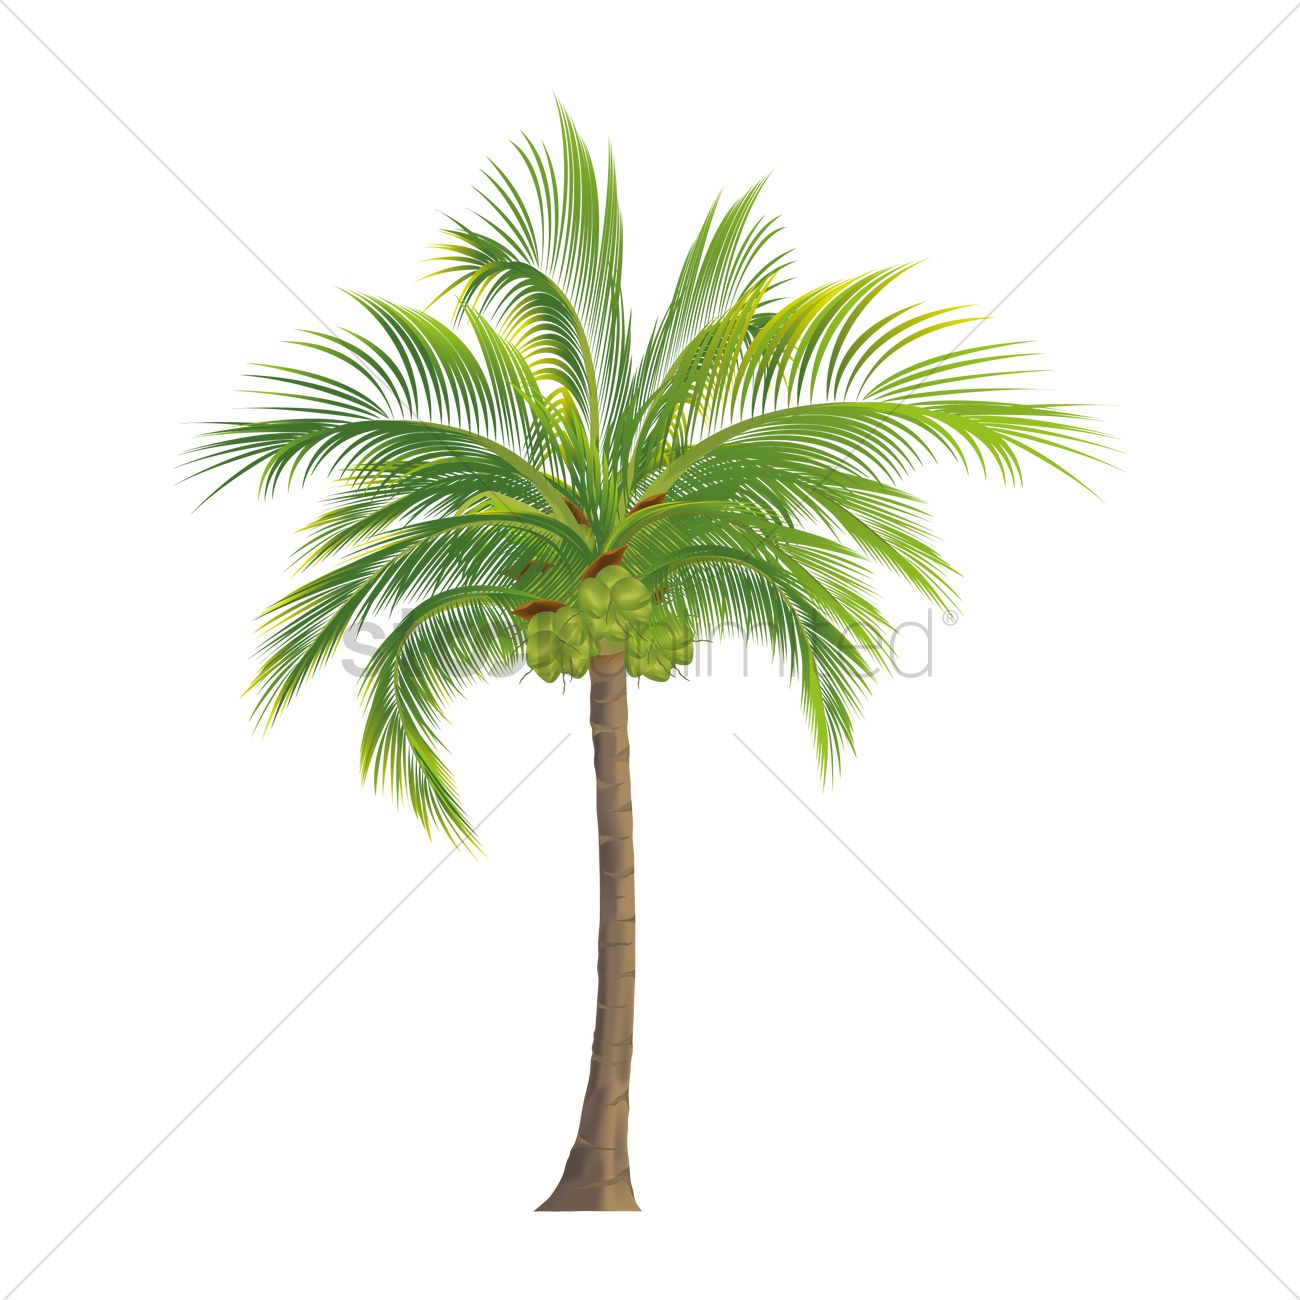 Coconut tree Vector Image - 1935821 | StockUnlimited